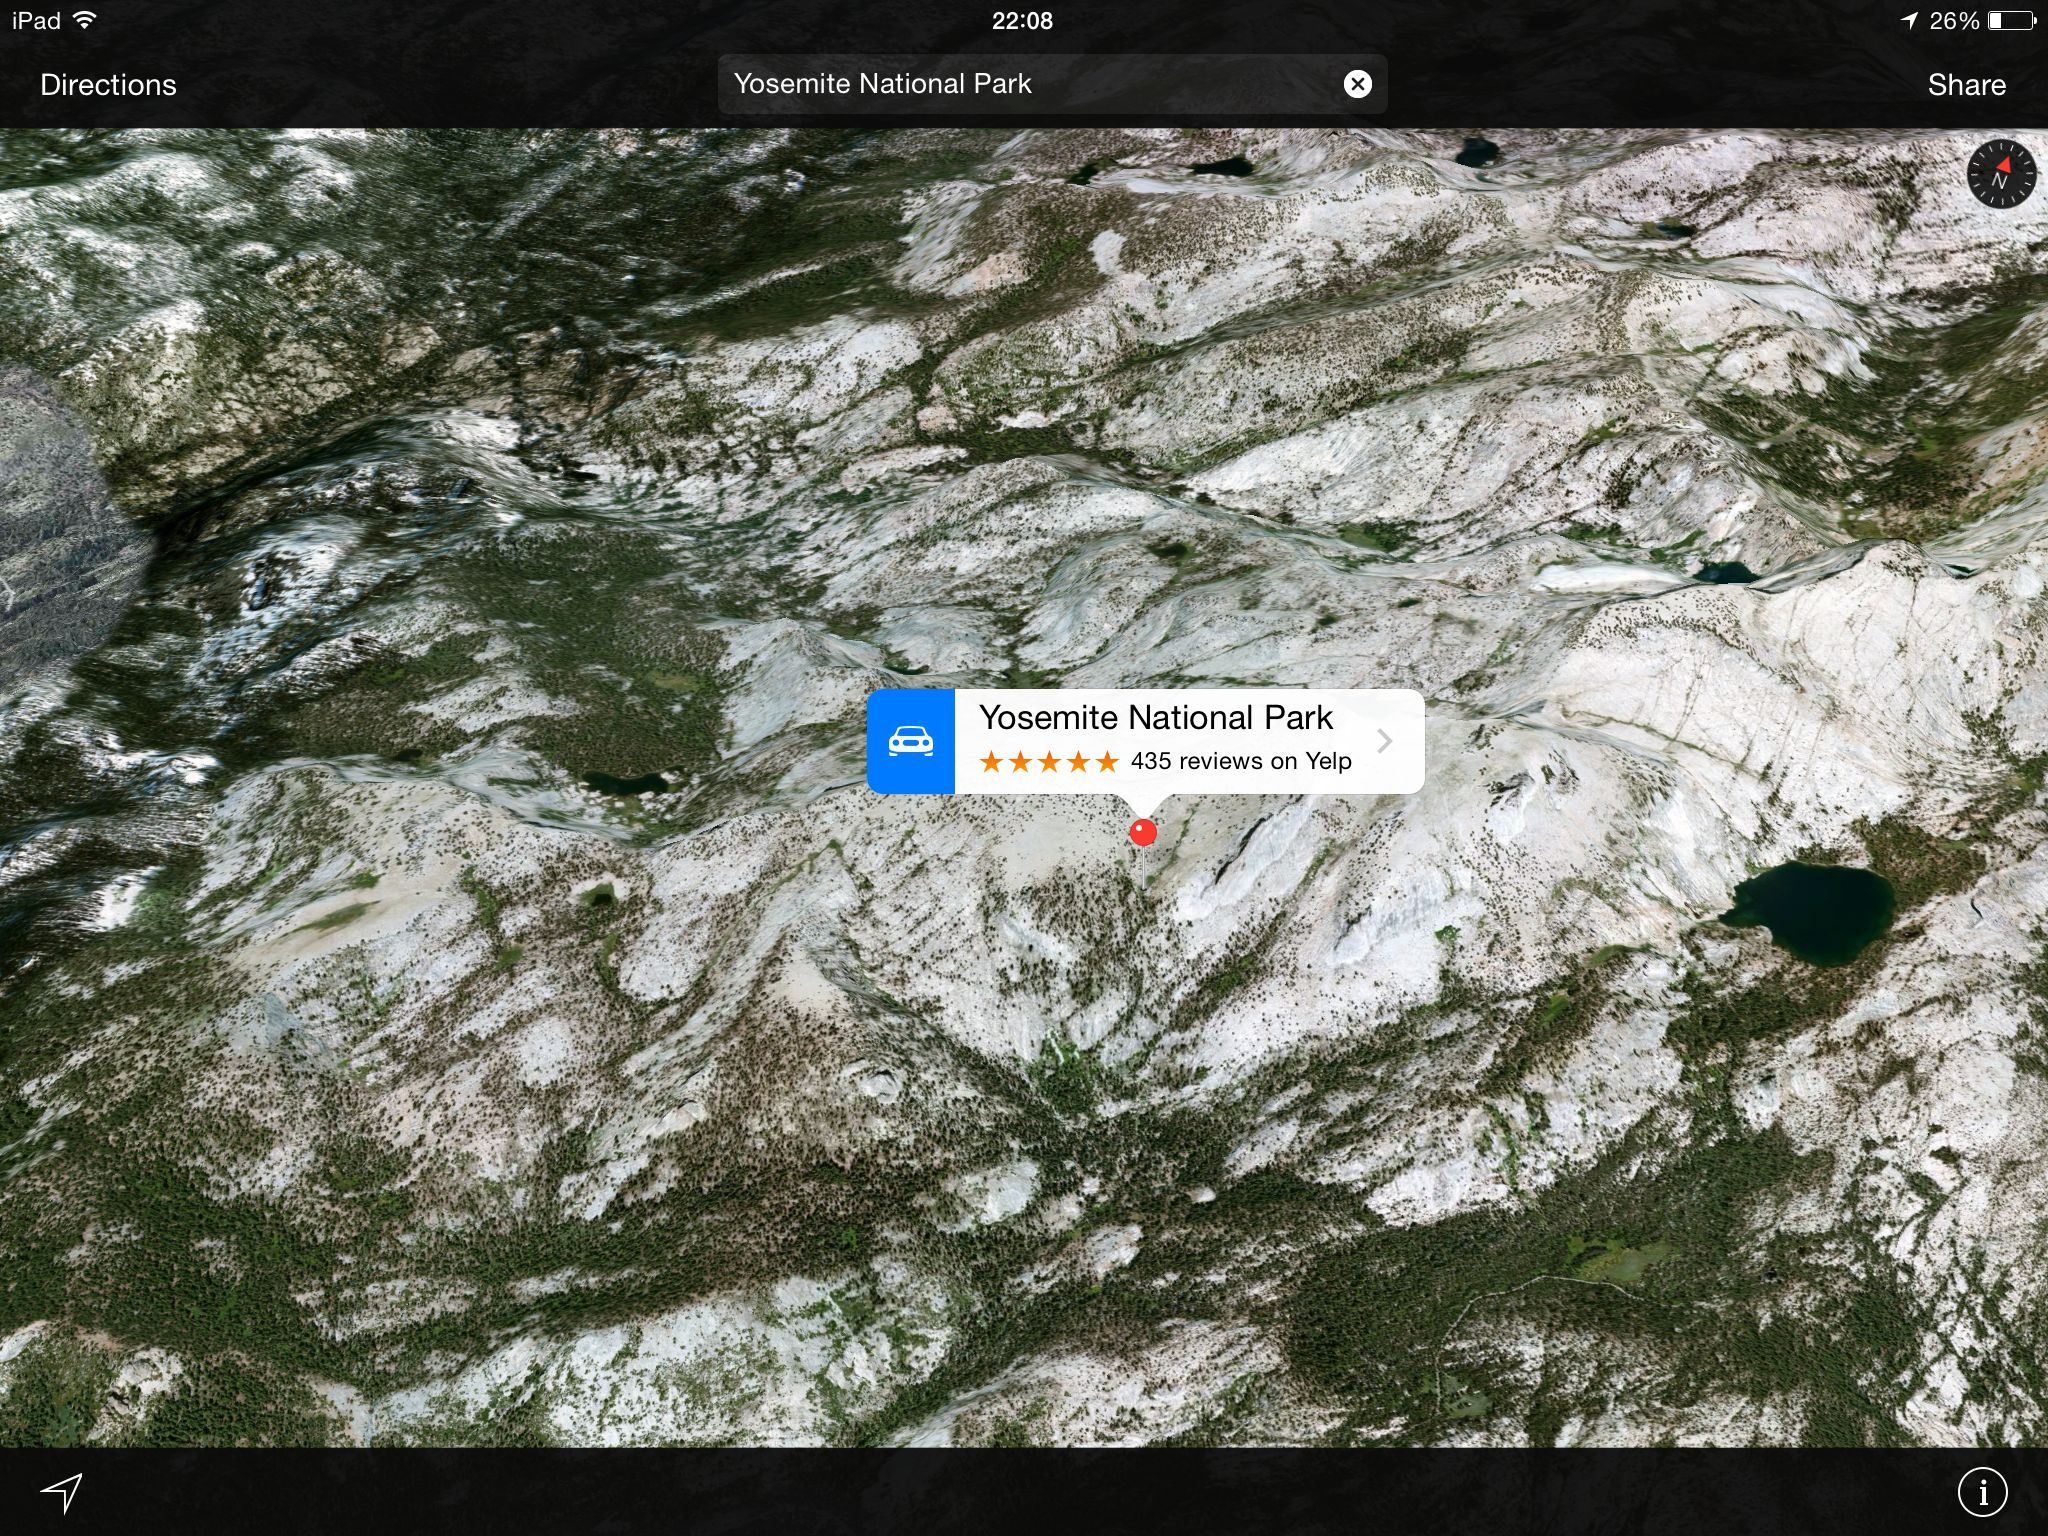 Apple Maps (Flyover, Yosemite National Park)